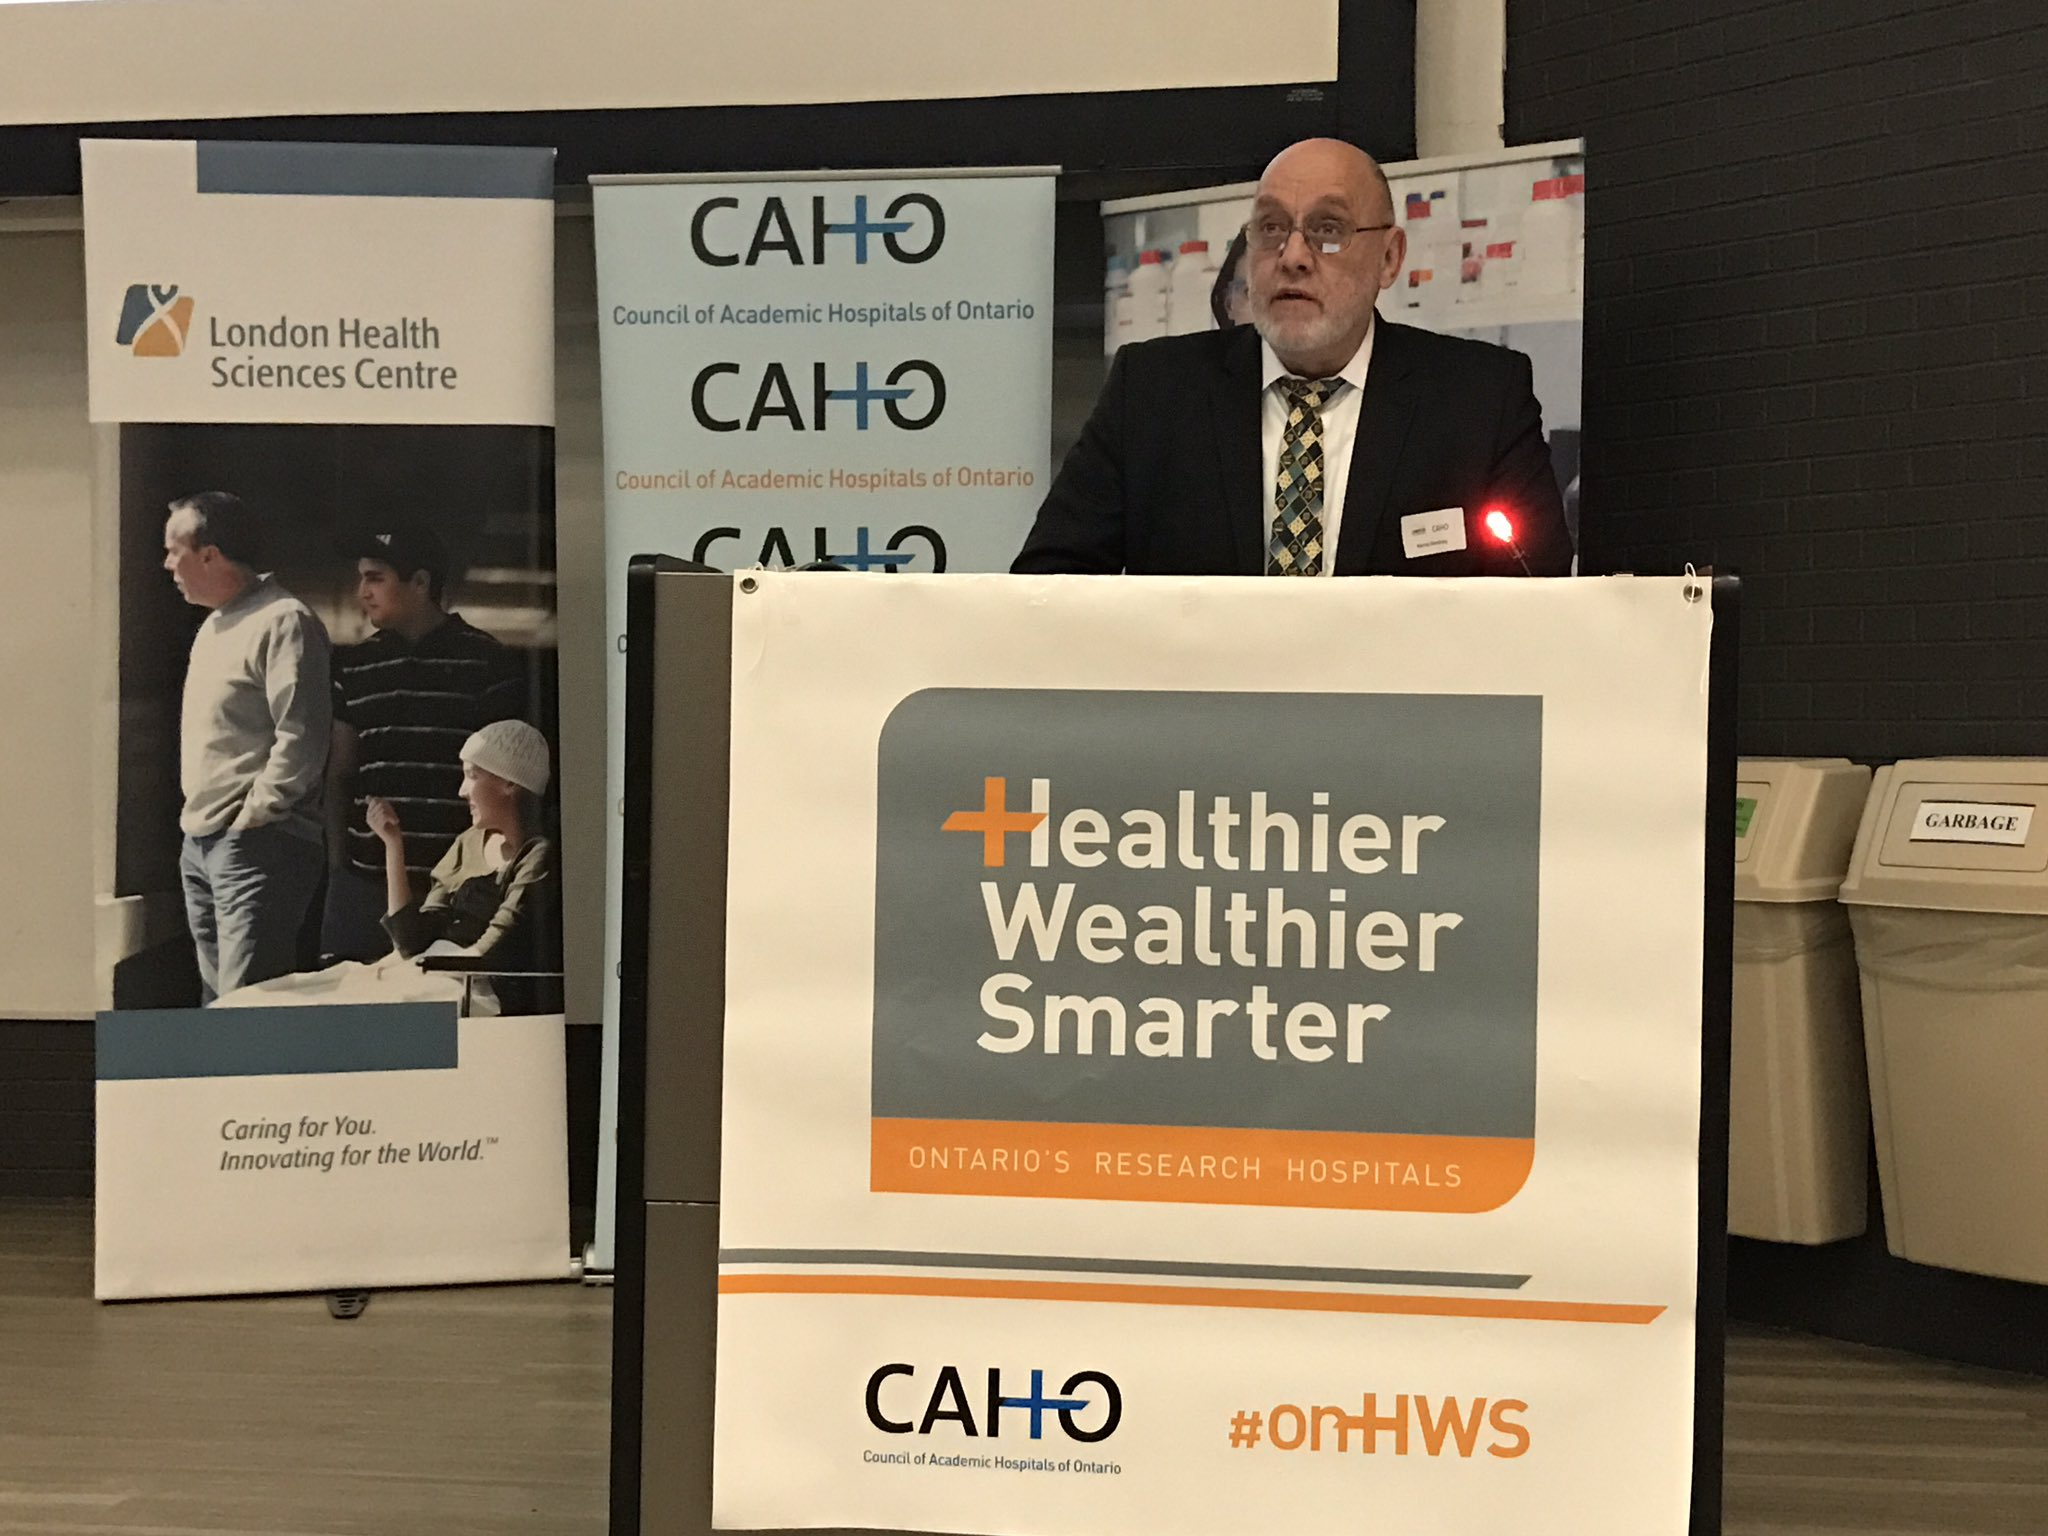 Murray Glendining, CEO of @LHSCCanada, says research in #ldnont benefits patients not only in London but around the world. #onhws https://t.co/kp8DBCBSma